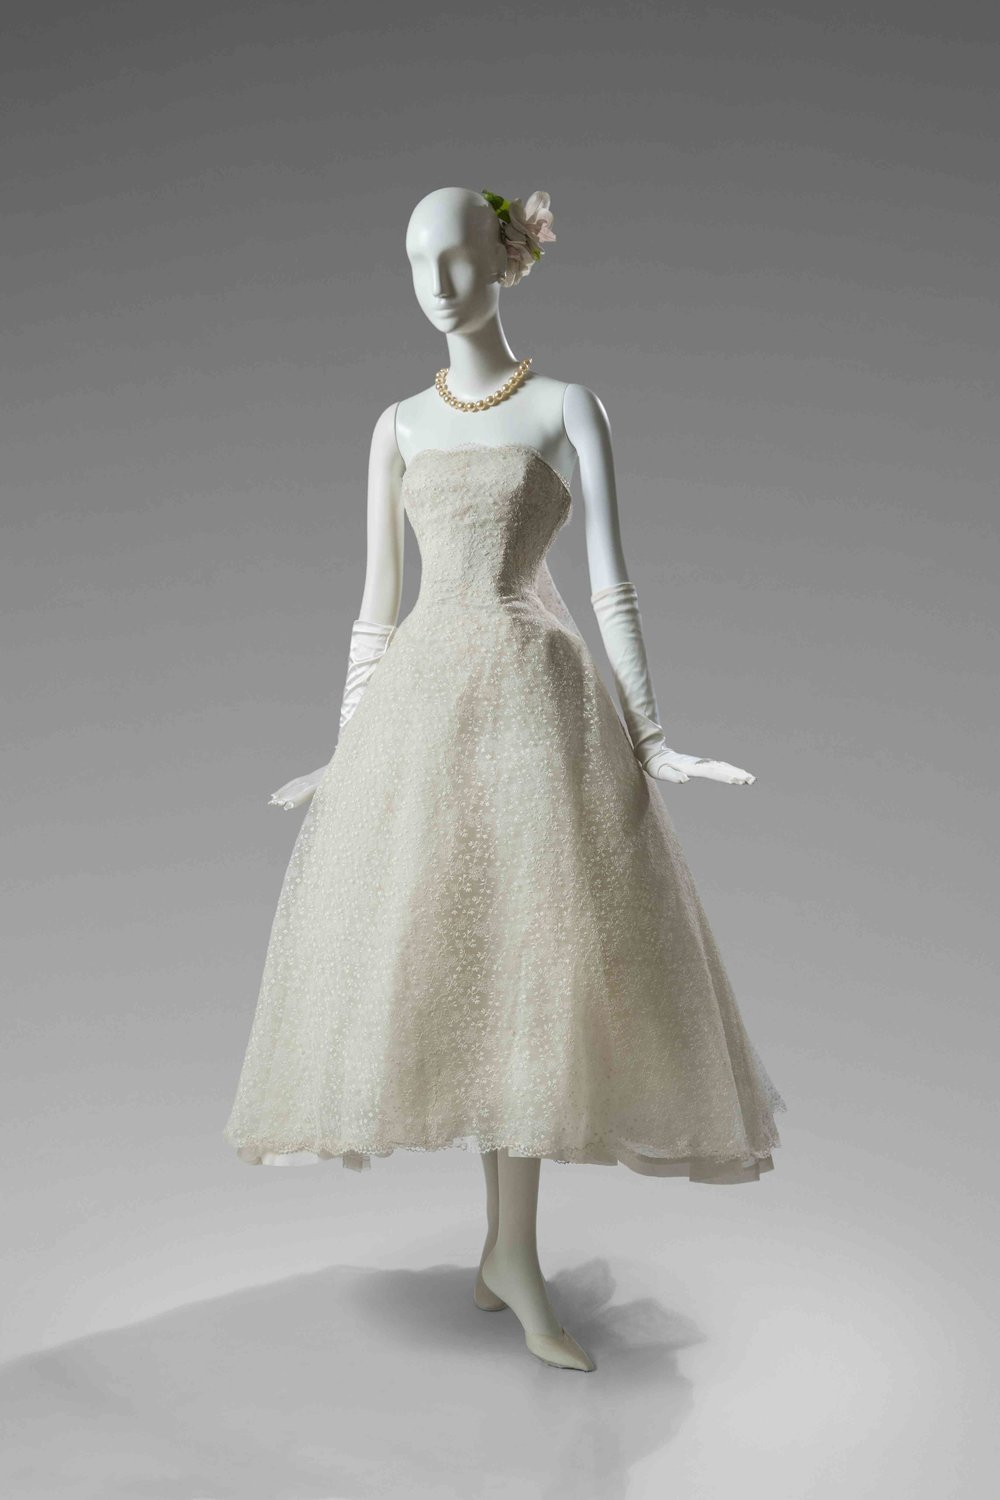 Robe du soir en dentelle Leavers, 1956. Un modèle semblable a été porté par Audrey Hepburn dans le film Funny Face (Drôle de frimousse) de Stanley Donen en 1957 © Collection Dominique Sirop, Paris - Photo Luc Castel.jpg